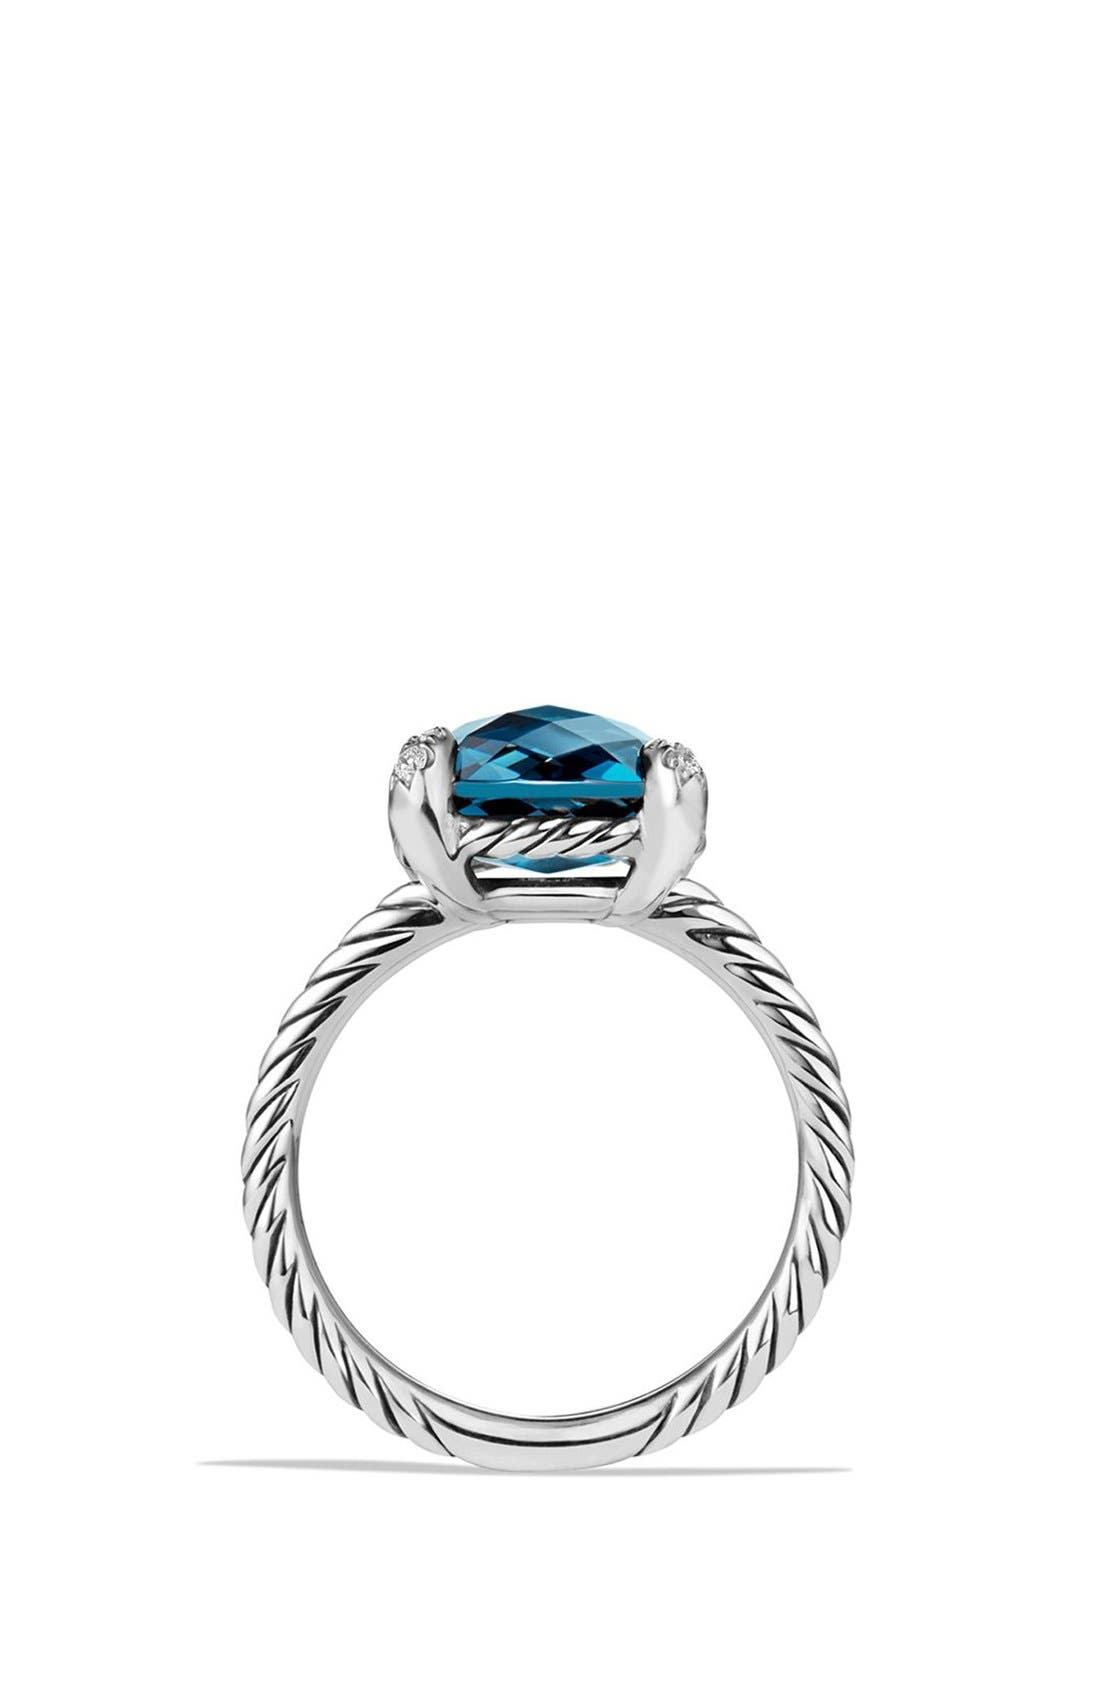 DAVID YURMAN,                             'Châtelaine' Ring with Semiprecious Stone and Diamonds,                             Alternate thumbnail 5, color,                             SILVER/ HAMPTON BLUE TOPAZ